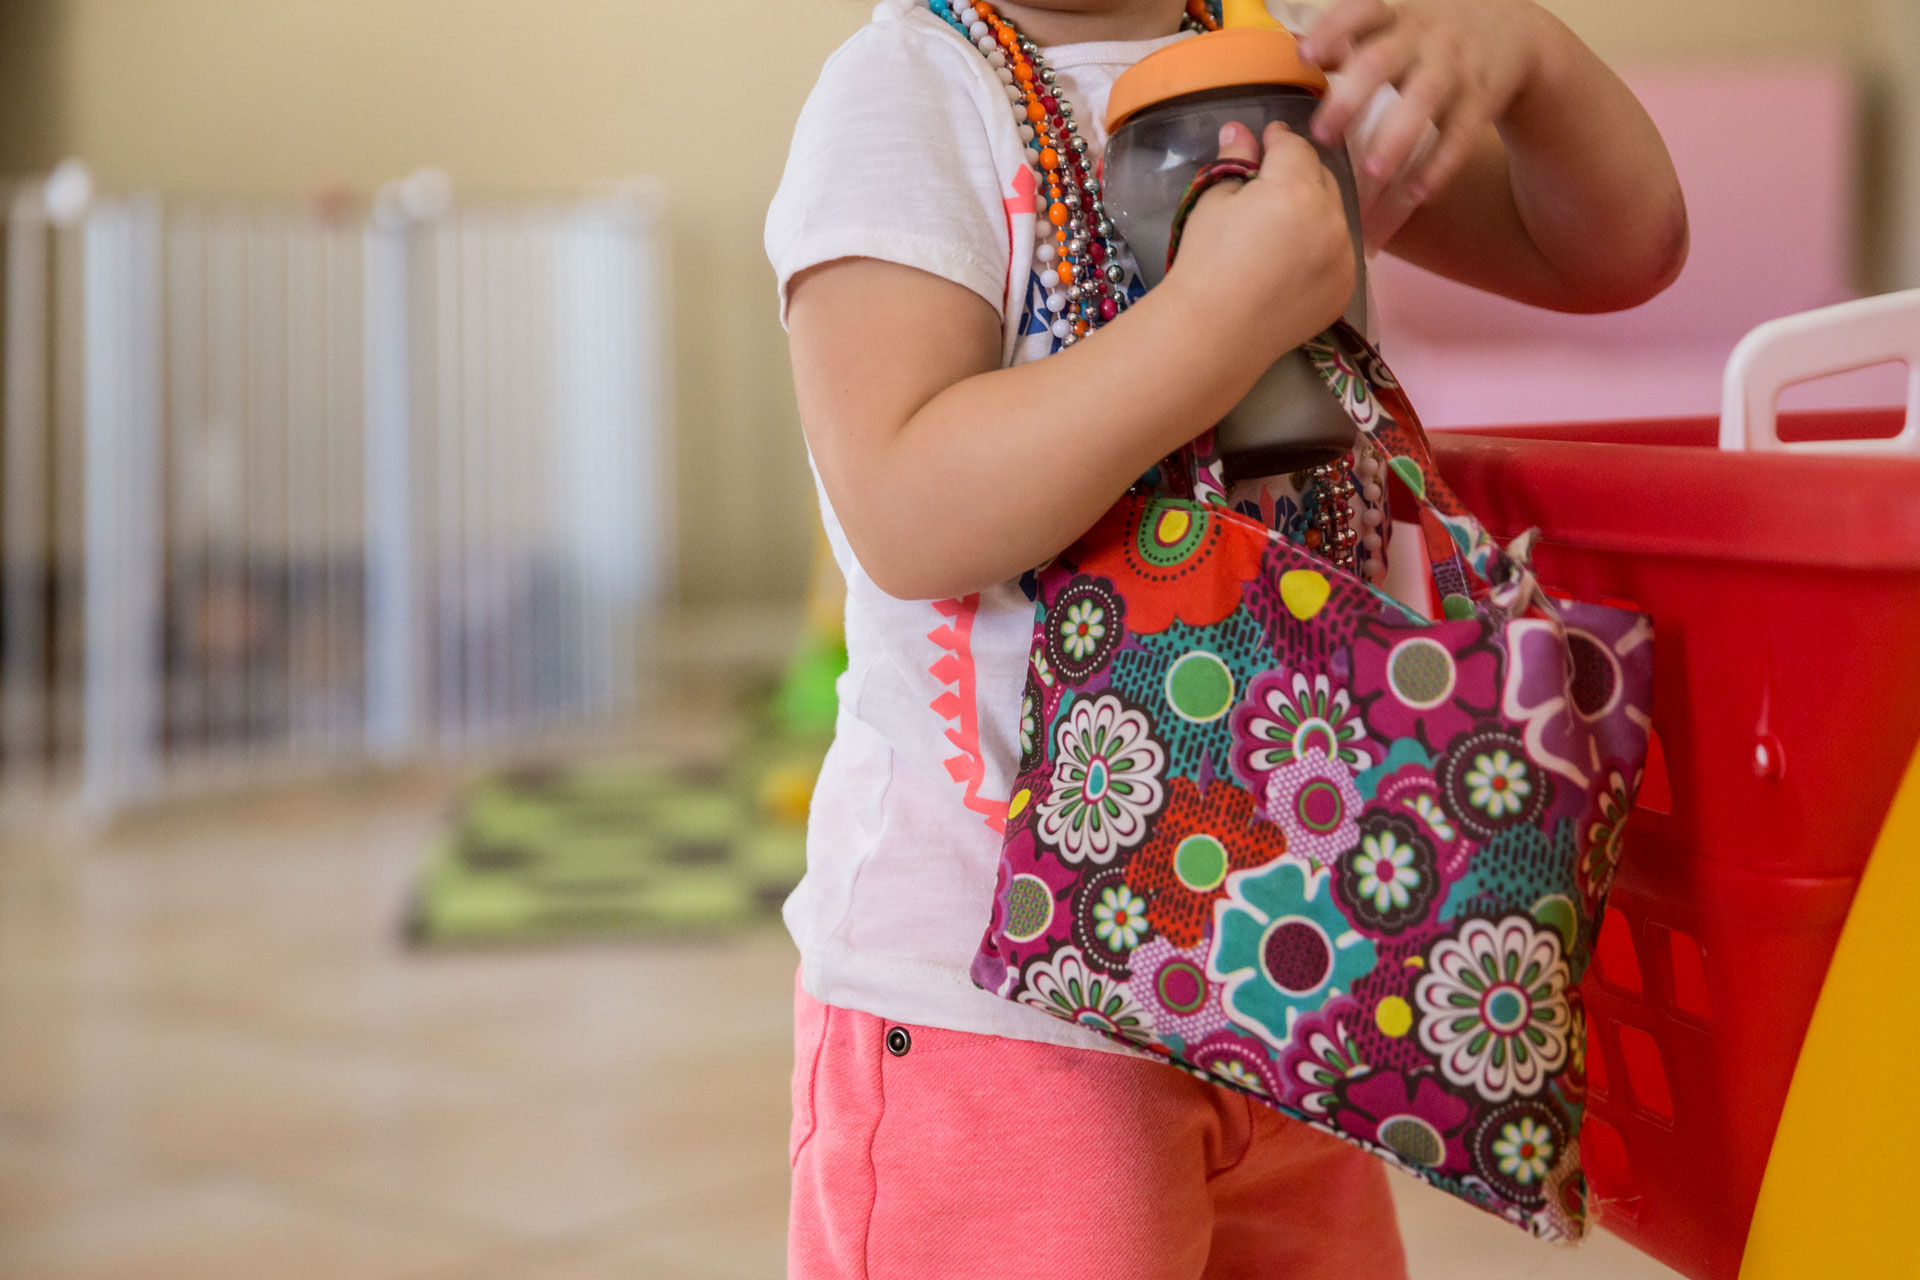 Toddler standing along next to her toy shopping cart with a purse and lots of necklaces on